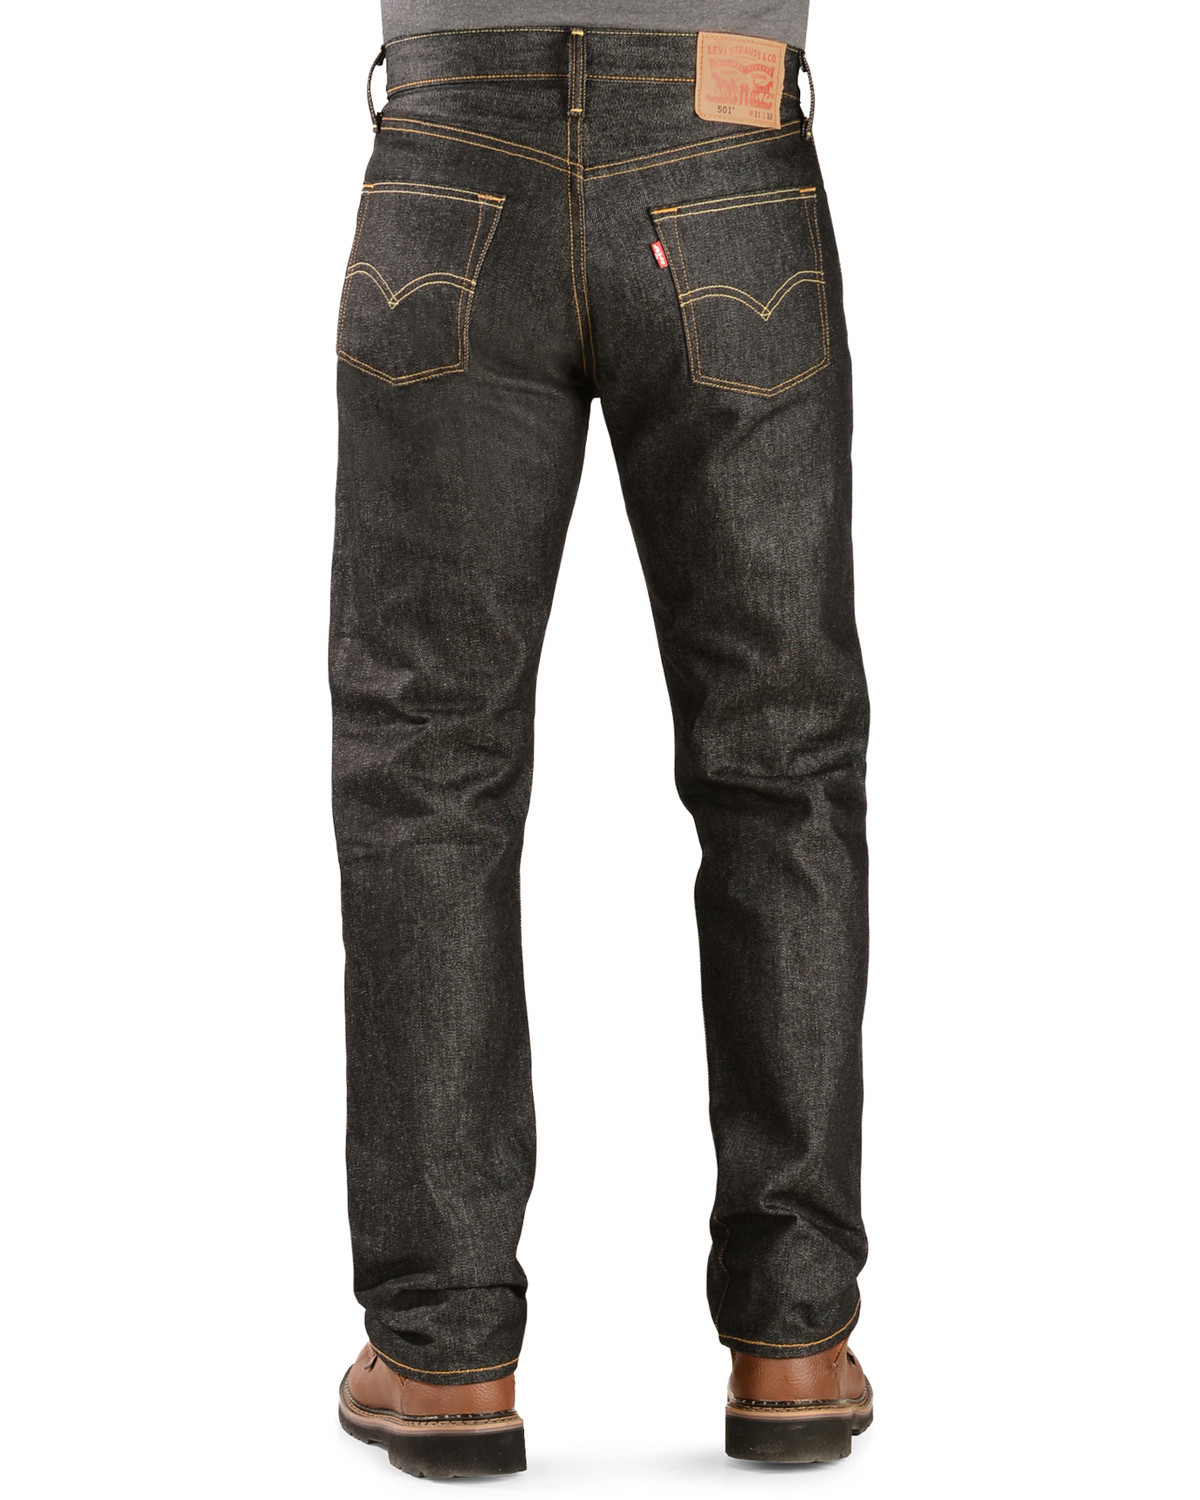 factory outlets reasonably priced get cheap Levi's 501 Jeans - Original Shrink-to-Fit | Sheplers